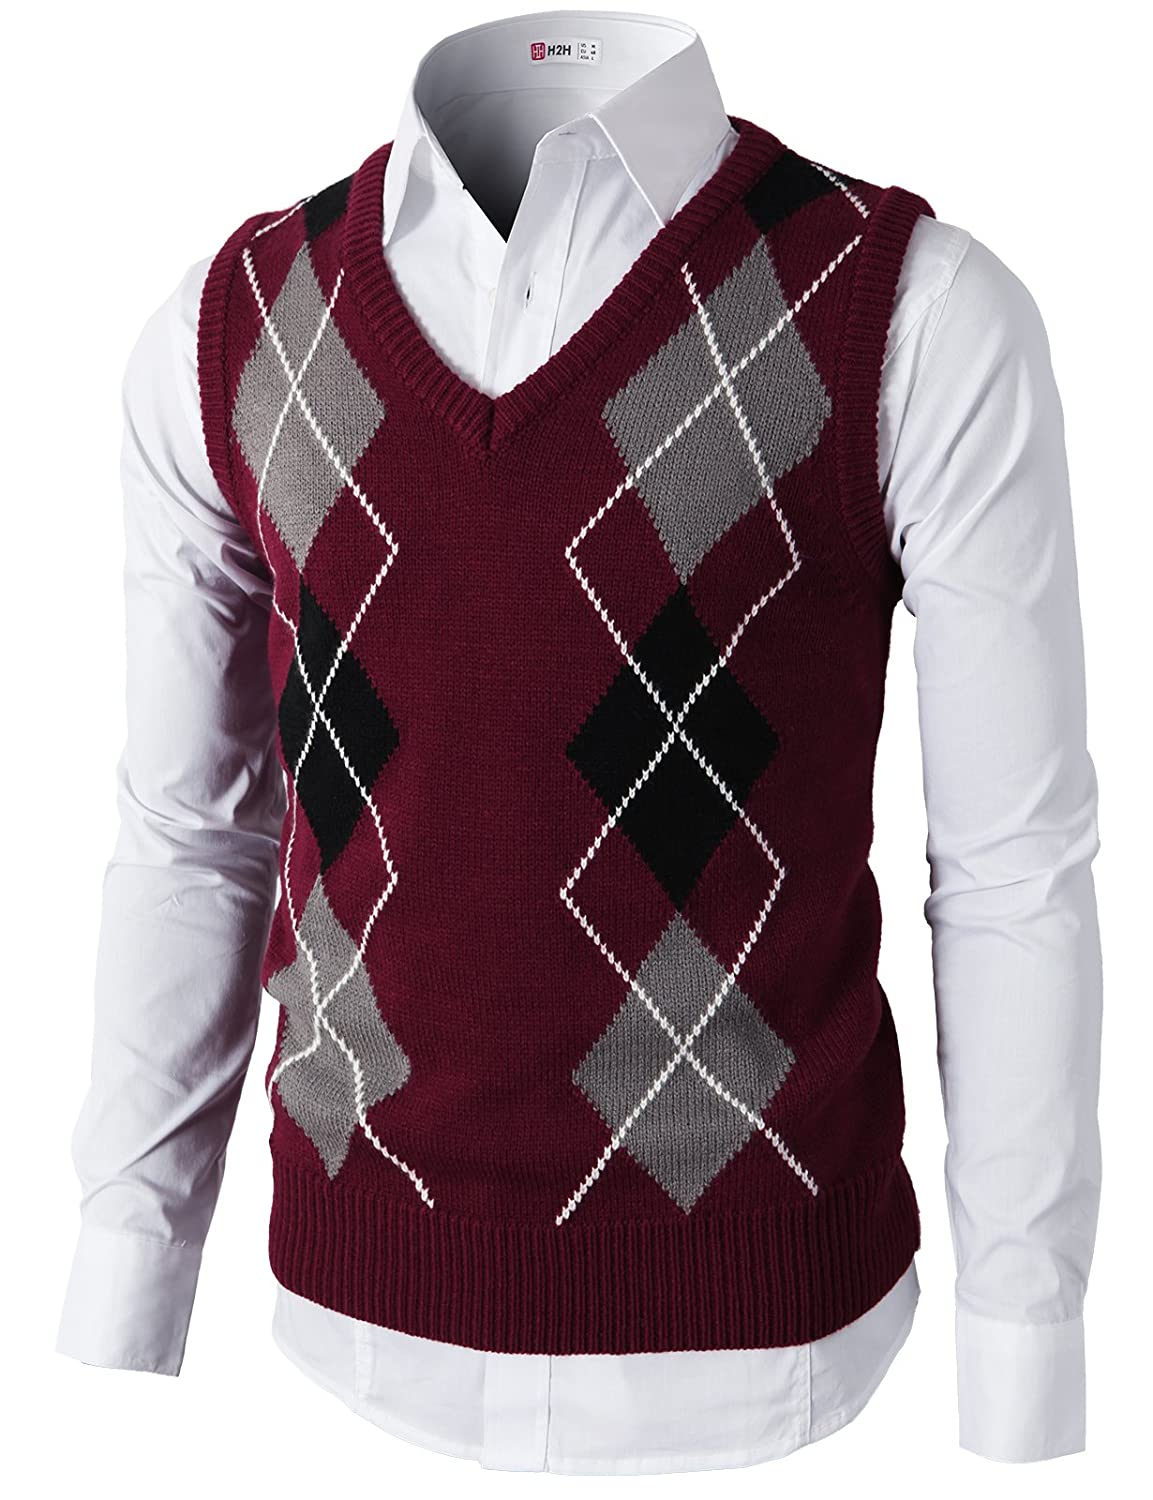 Men's Vintage Style Sweaters – 1920s to 1960s Argyle V-Neck Golf Sweater Vest Of Various Colors $29.70 AT vintagedancer.com